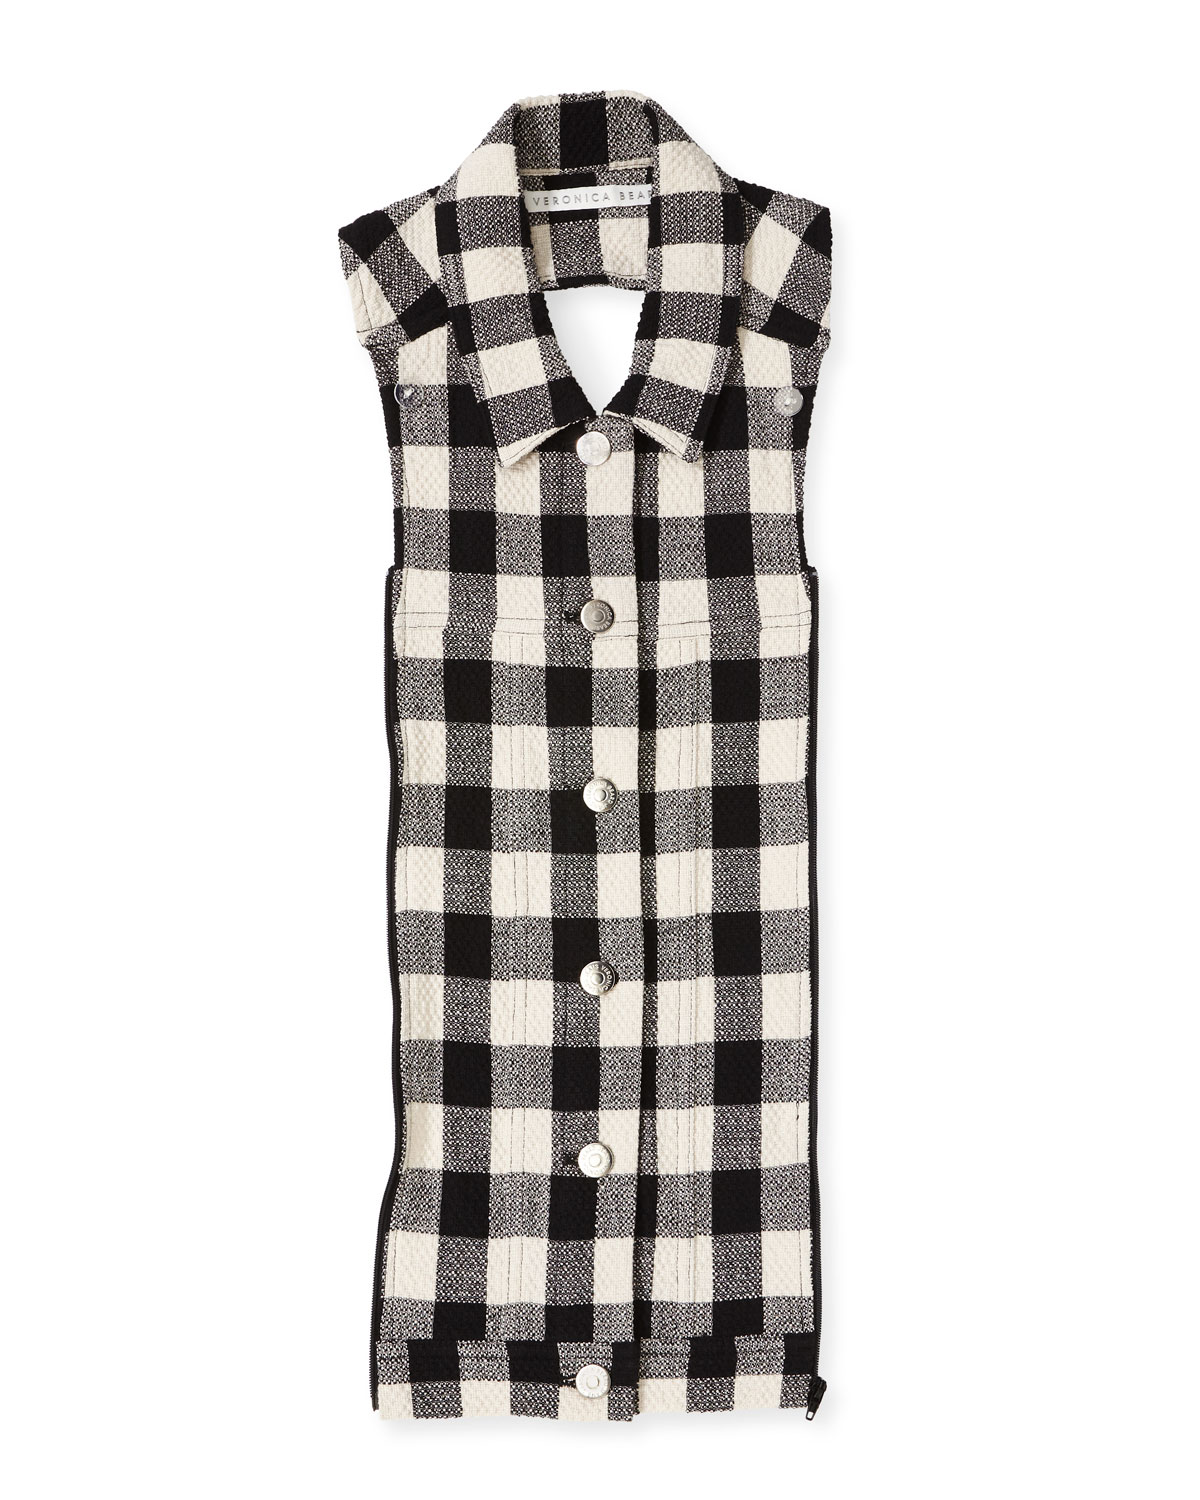 Veronica Beard Cottons SLATE GINGHAM BUTTON-FRONT DICKEY